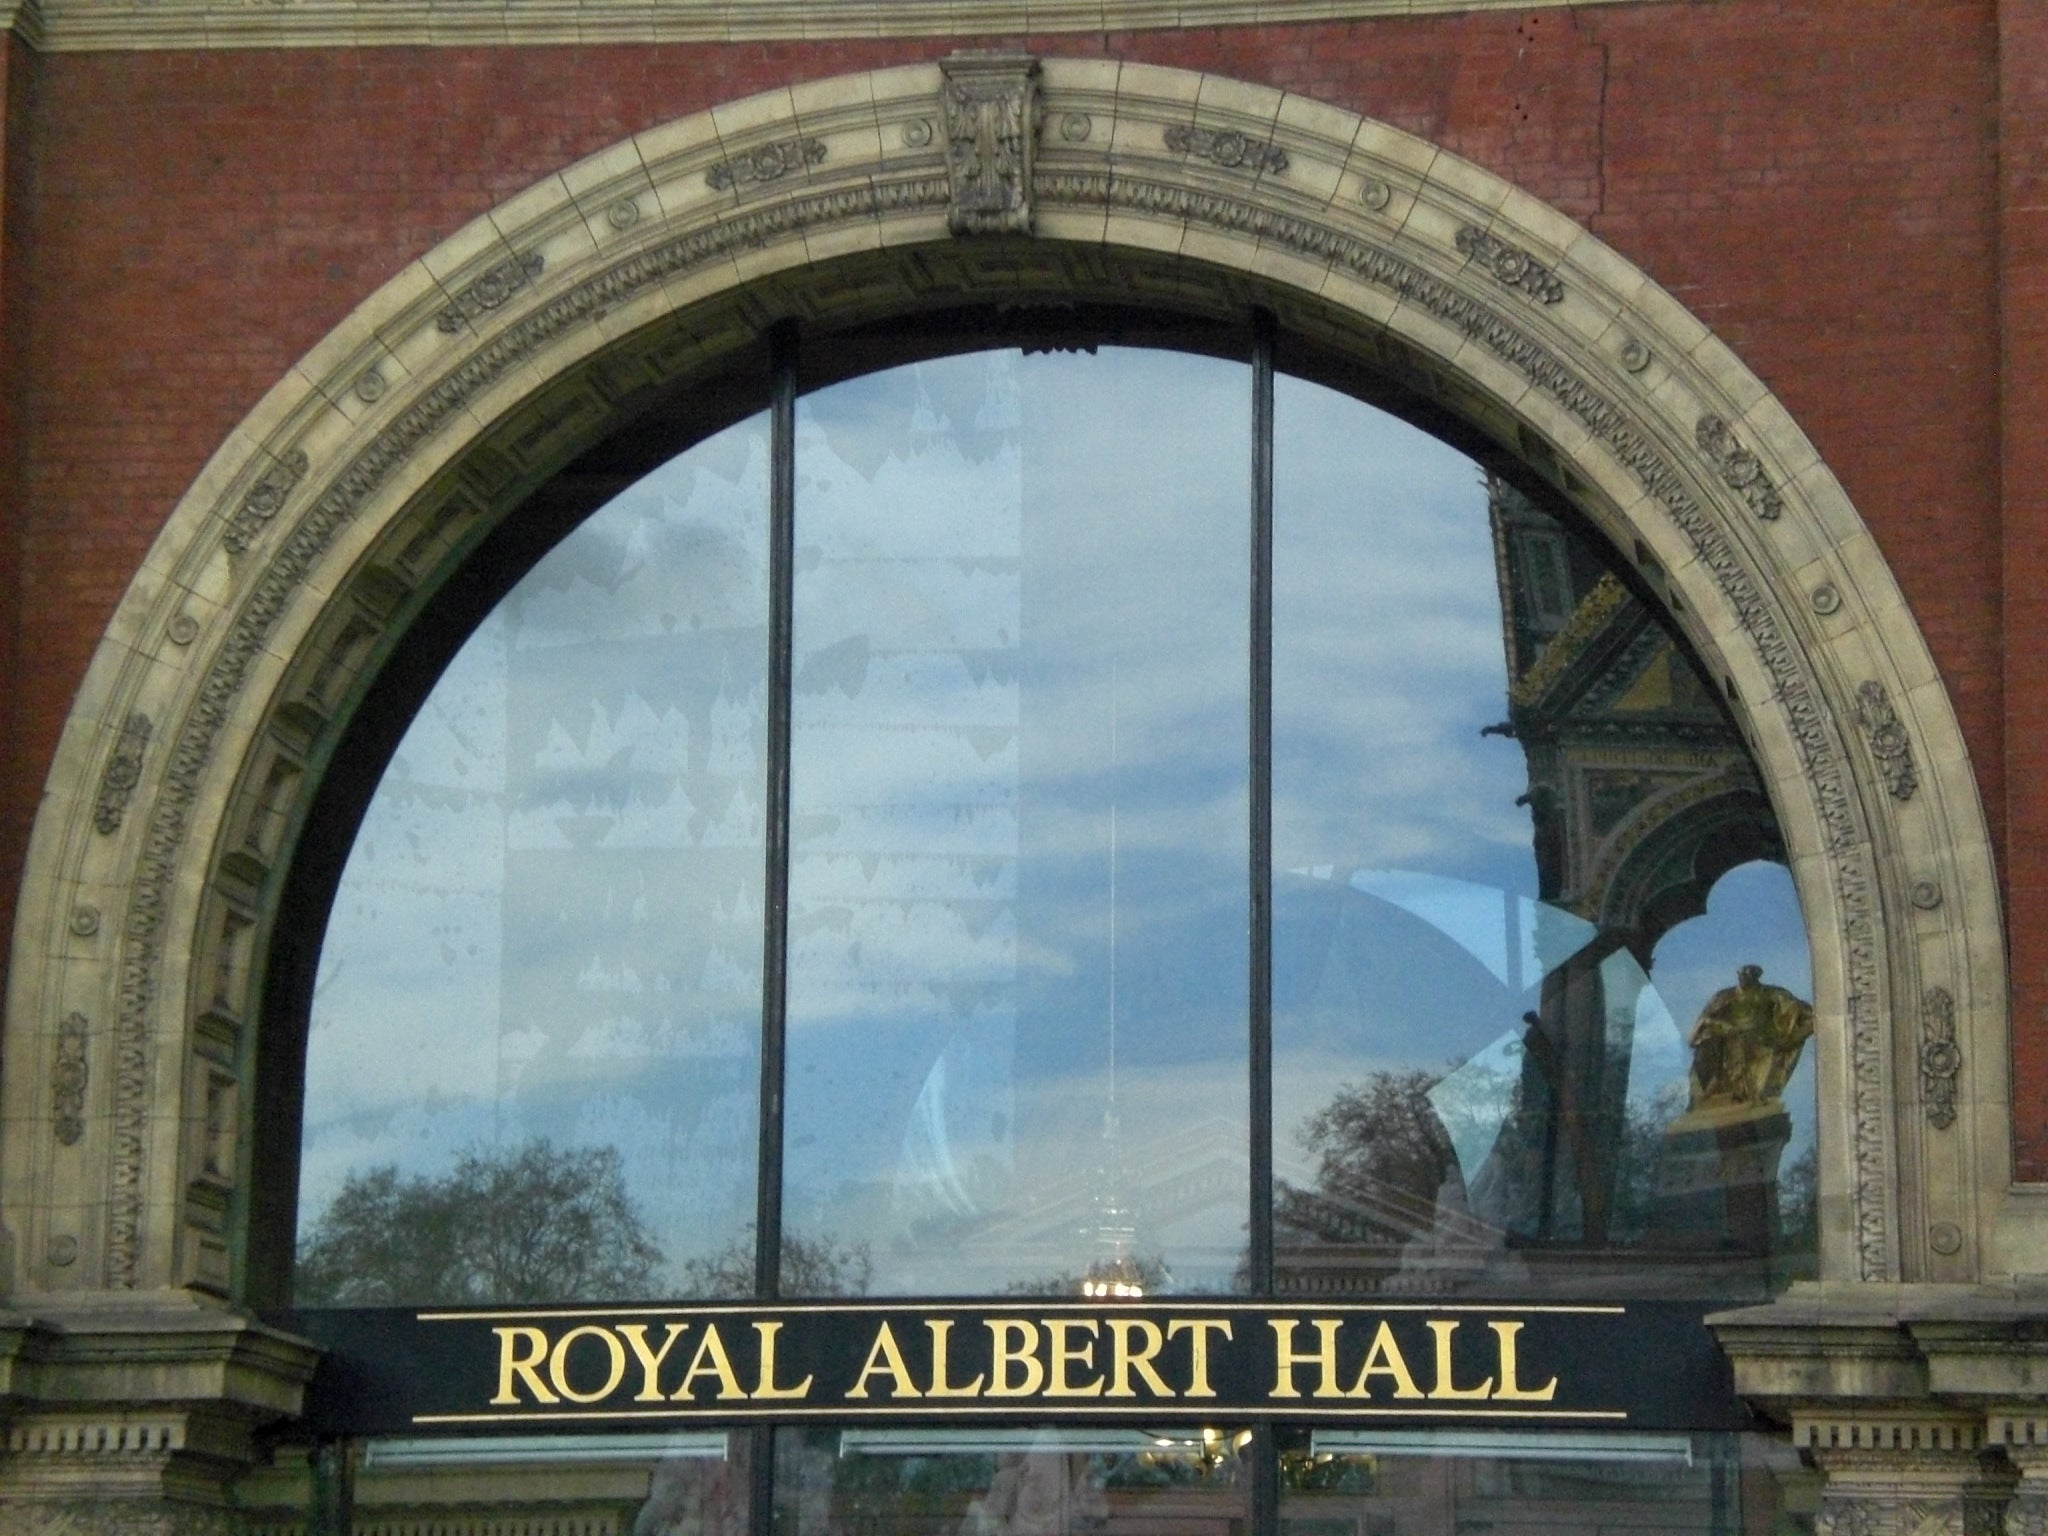 Arco en Royal Albert Hall